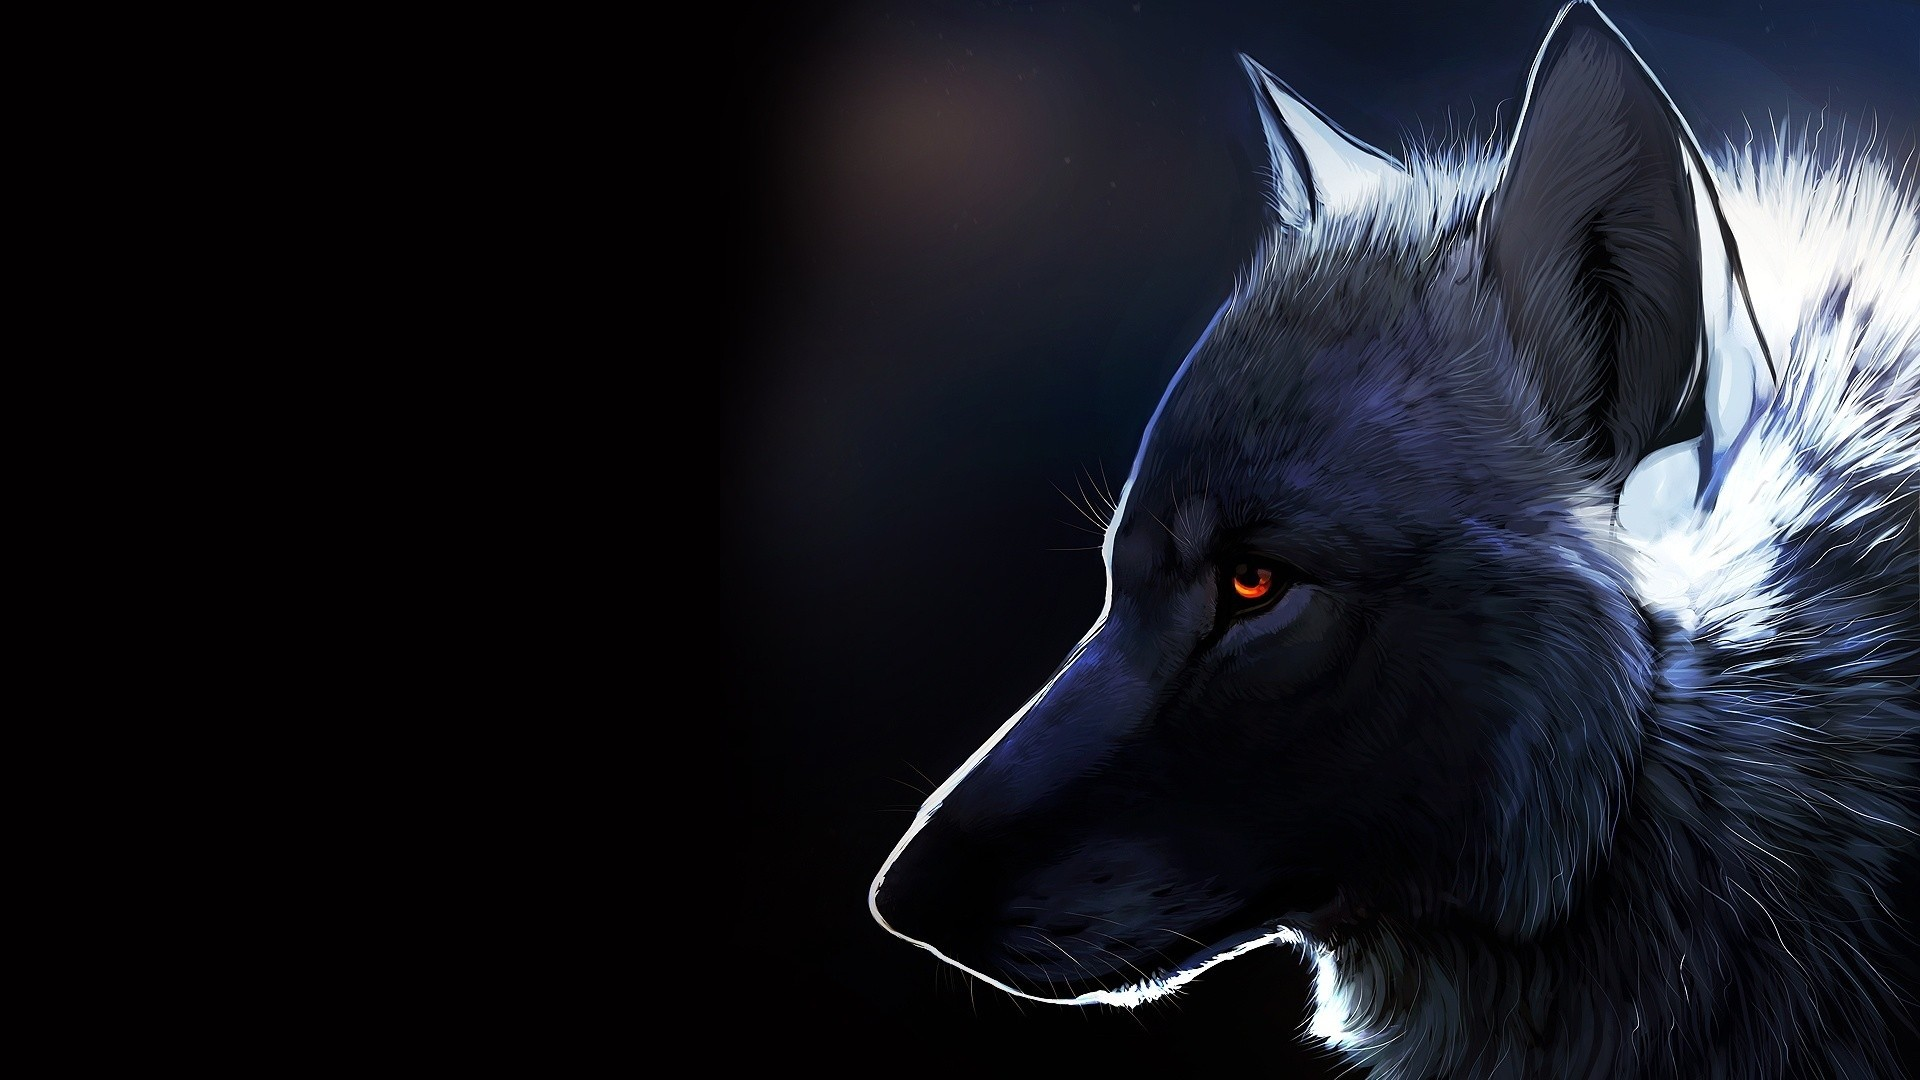 Res: 1920x1080, Wolf, Profile View, Majestic, Red Eyes, Furry